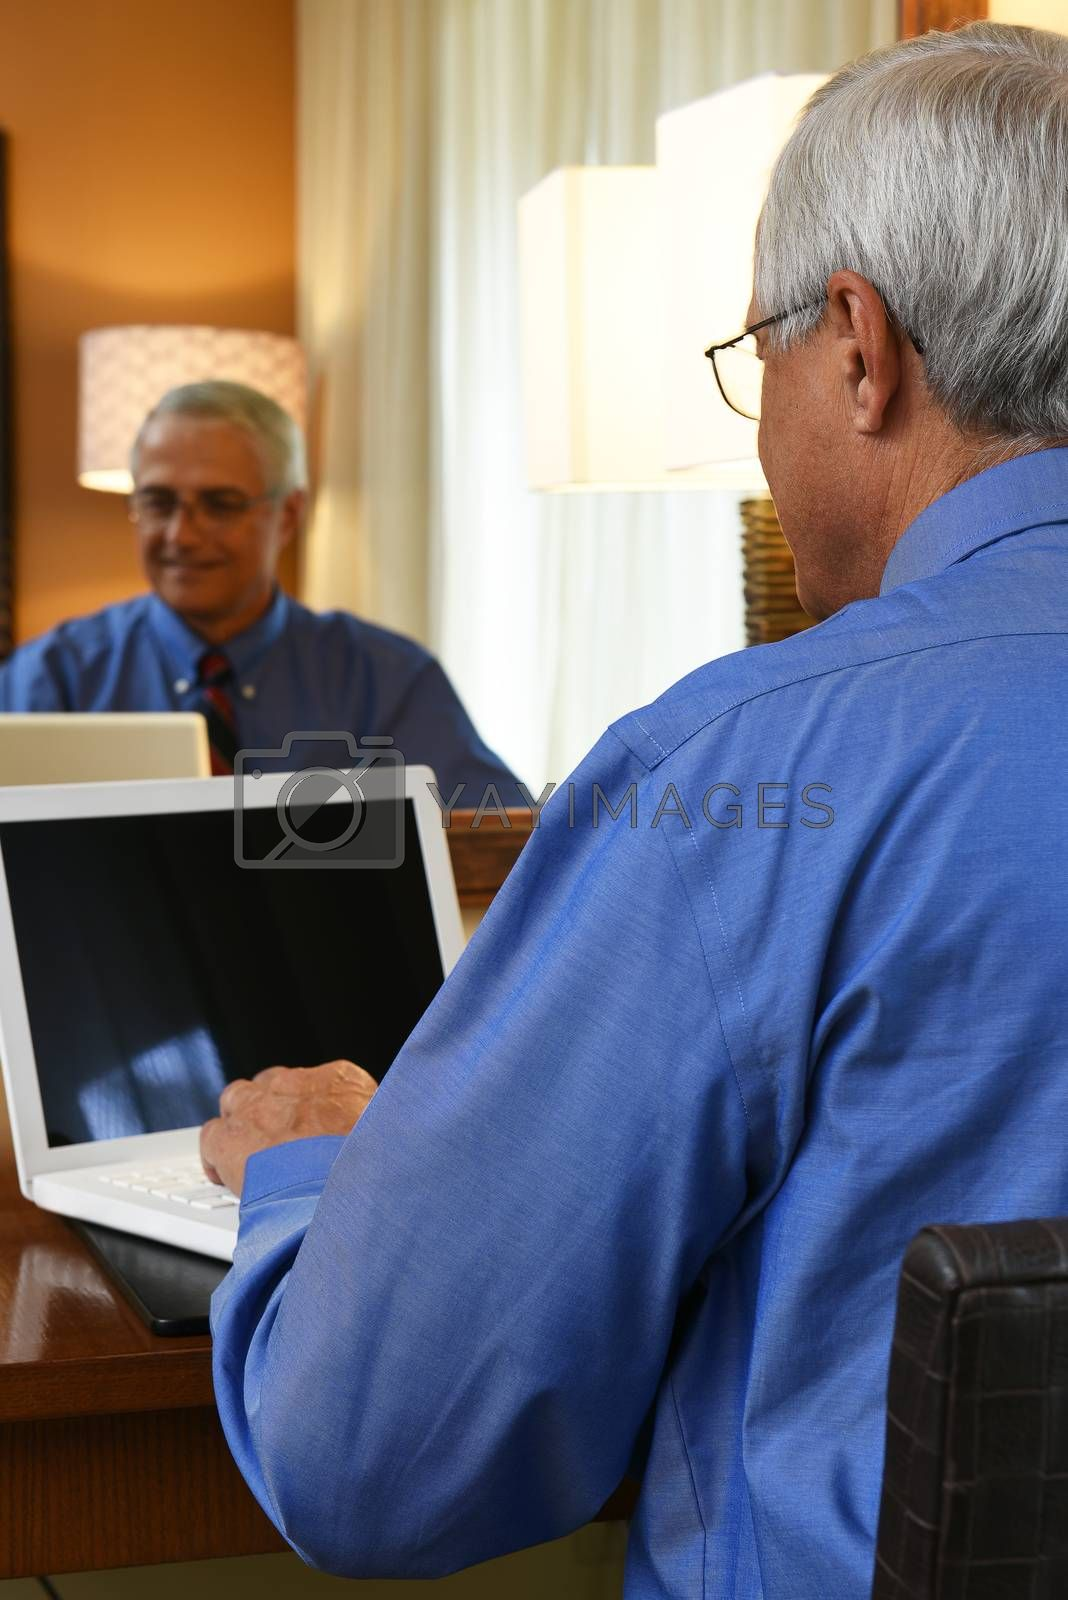 Business Travel Concept: Mature businessman sitting at his hotel room desk working on his laptop computer with his reflection in the mirror.